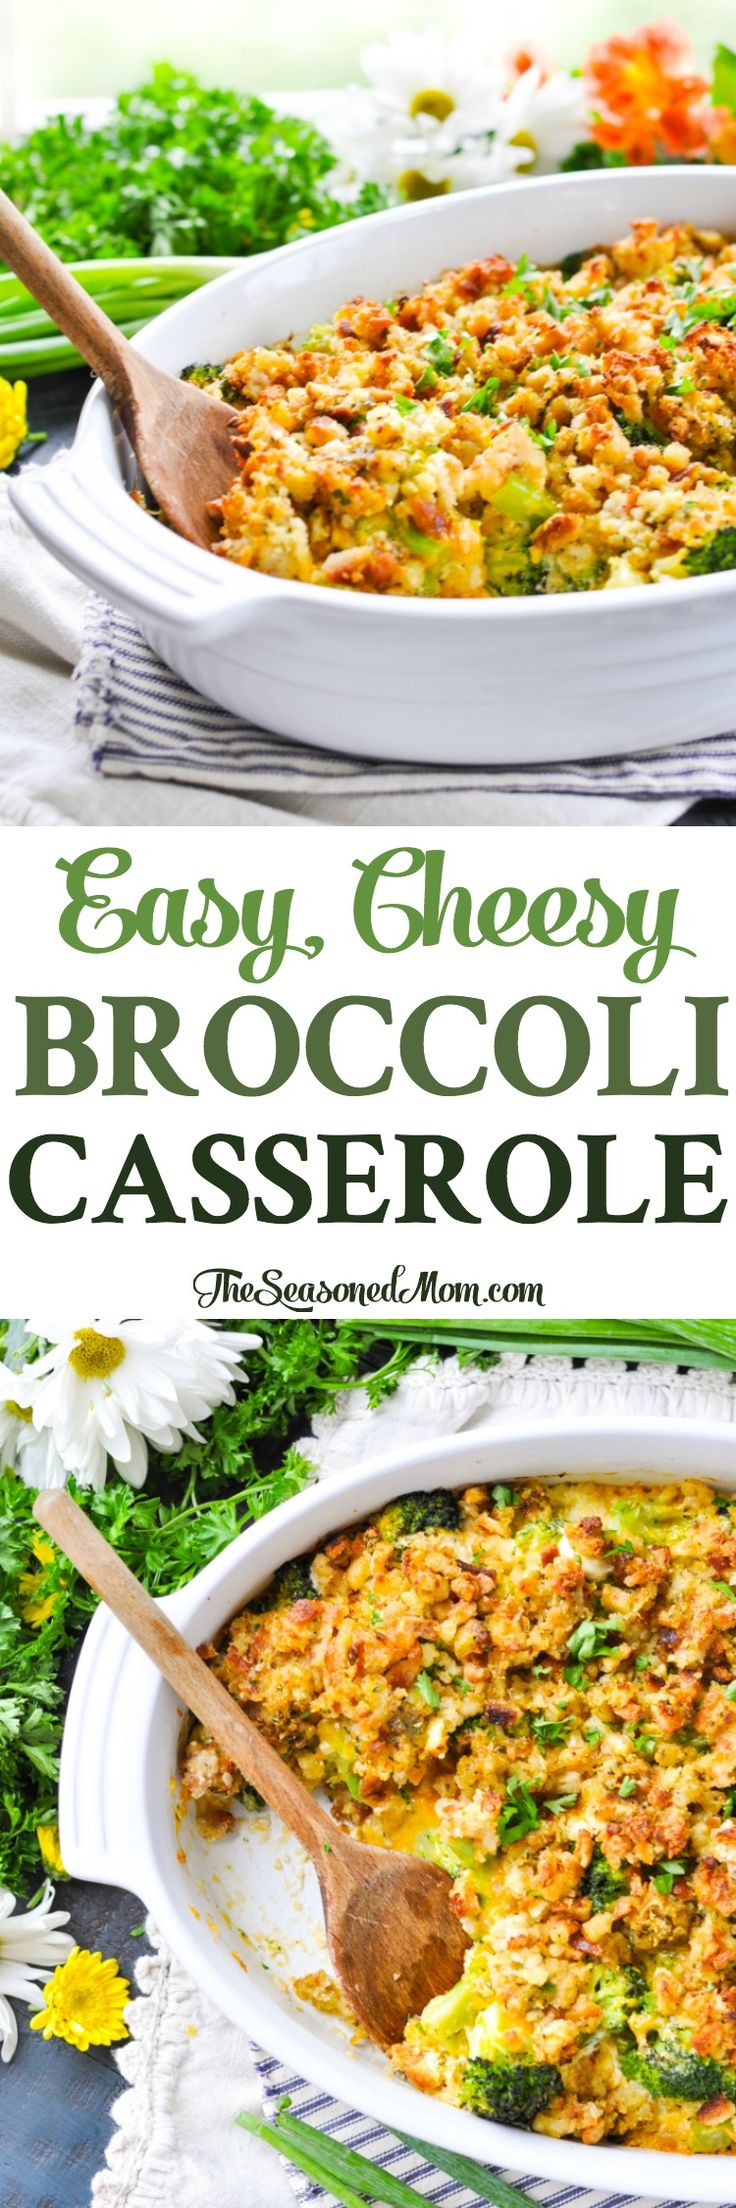 This Easy, Cheesy Broccoli Casserole is an easy side dish for Thanksgiving, potlucks, or weeknight dinners! Broccoli Recipes | Broccoli Cheese Casserole | Easy Side Dishes #sides #broccoli #casserole